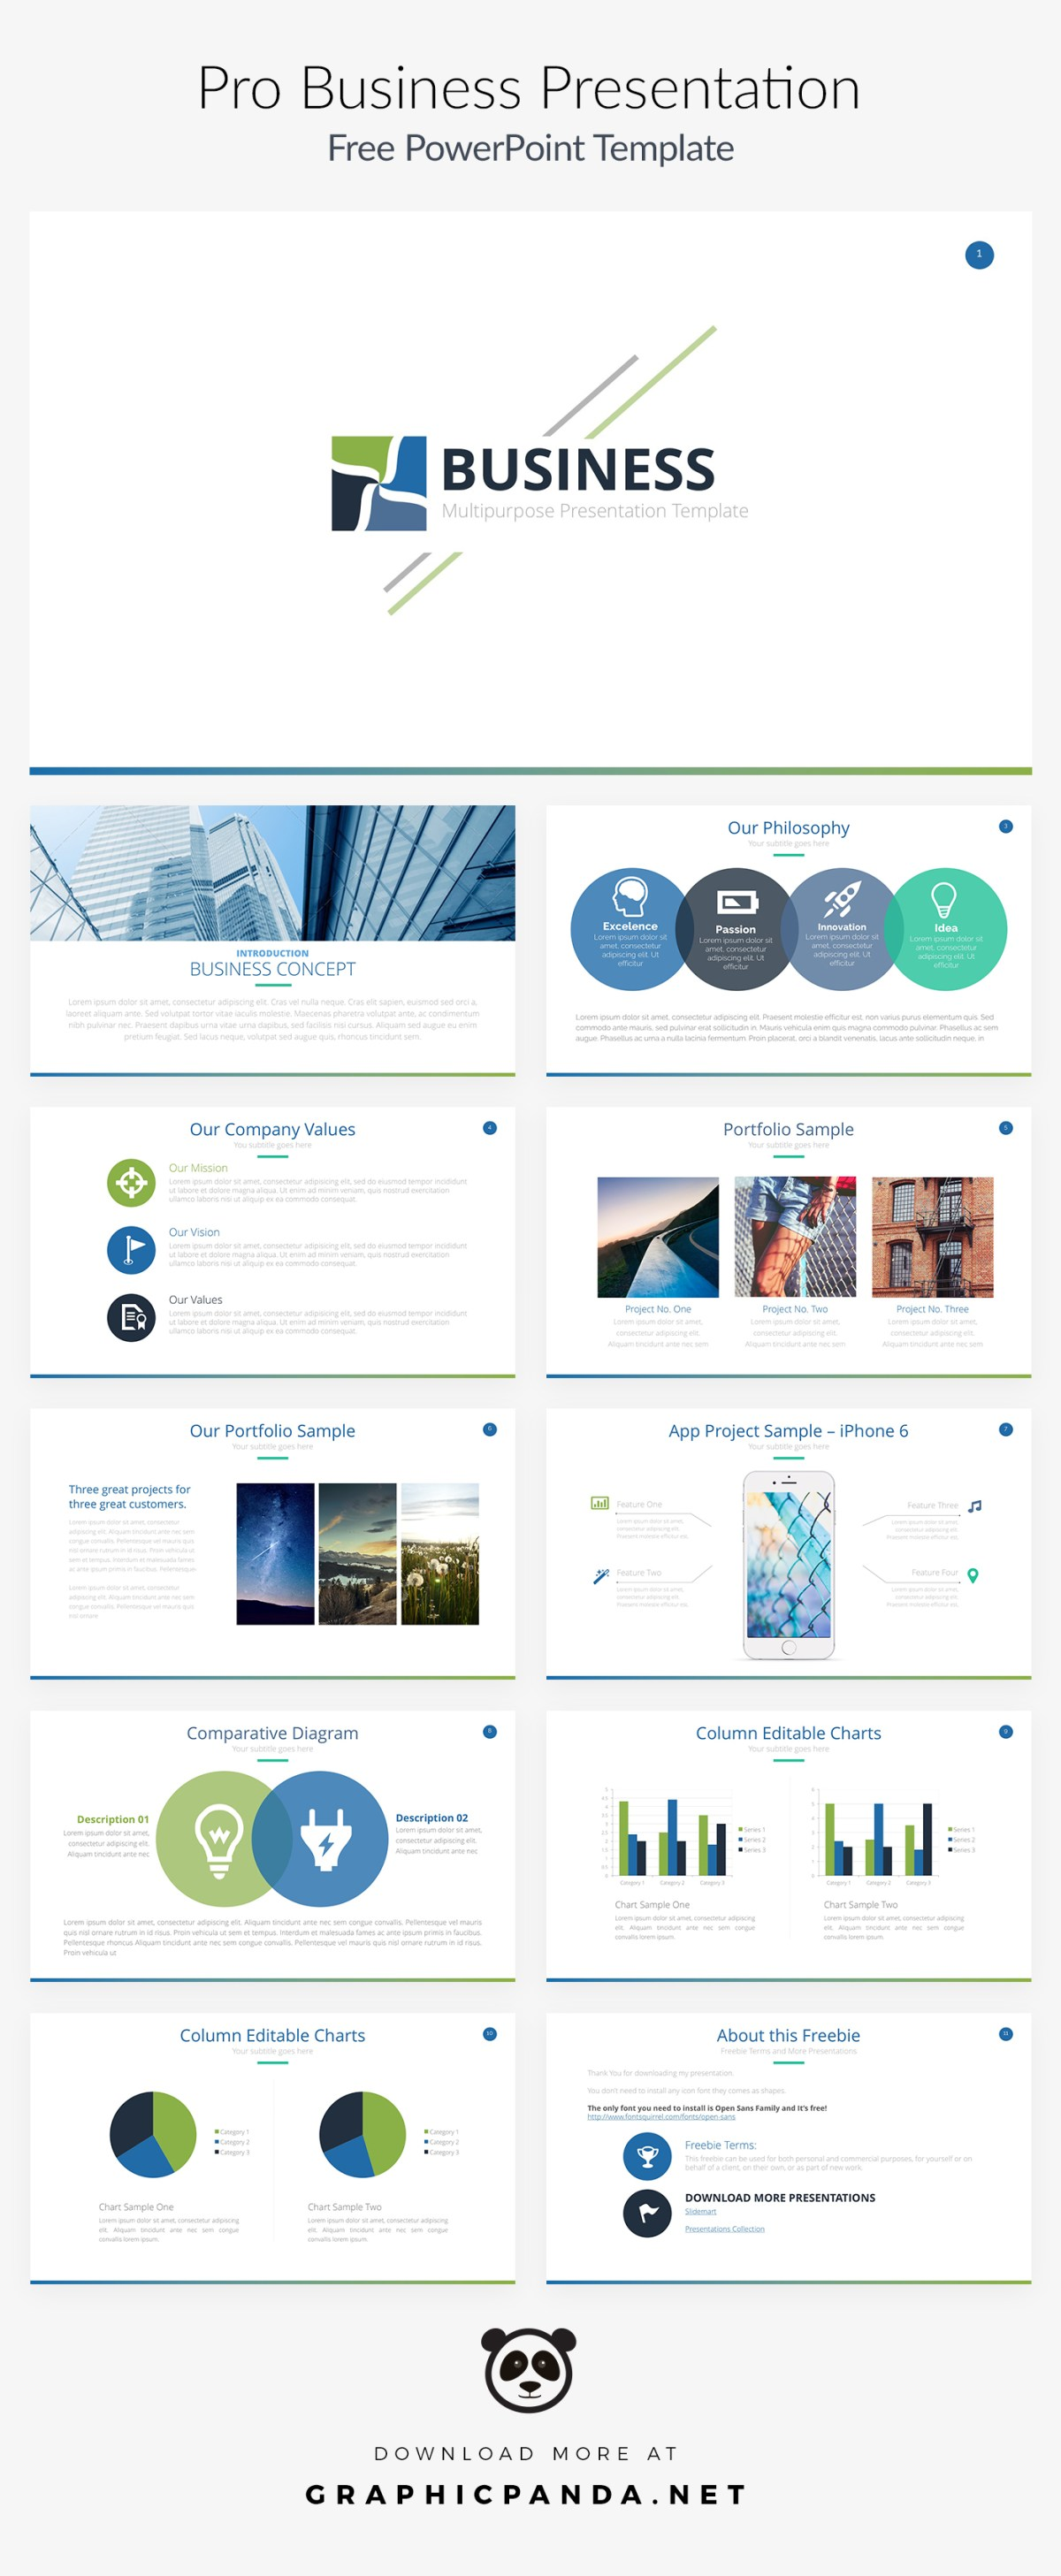 free business powerpoint template ppt, pptx download, Modern powerpoint